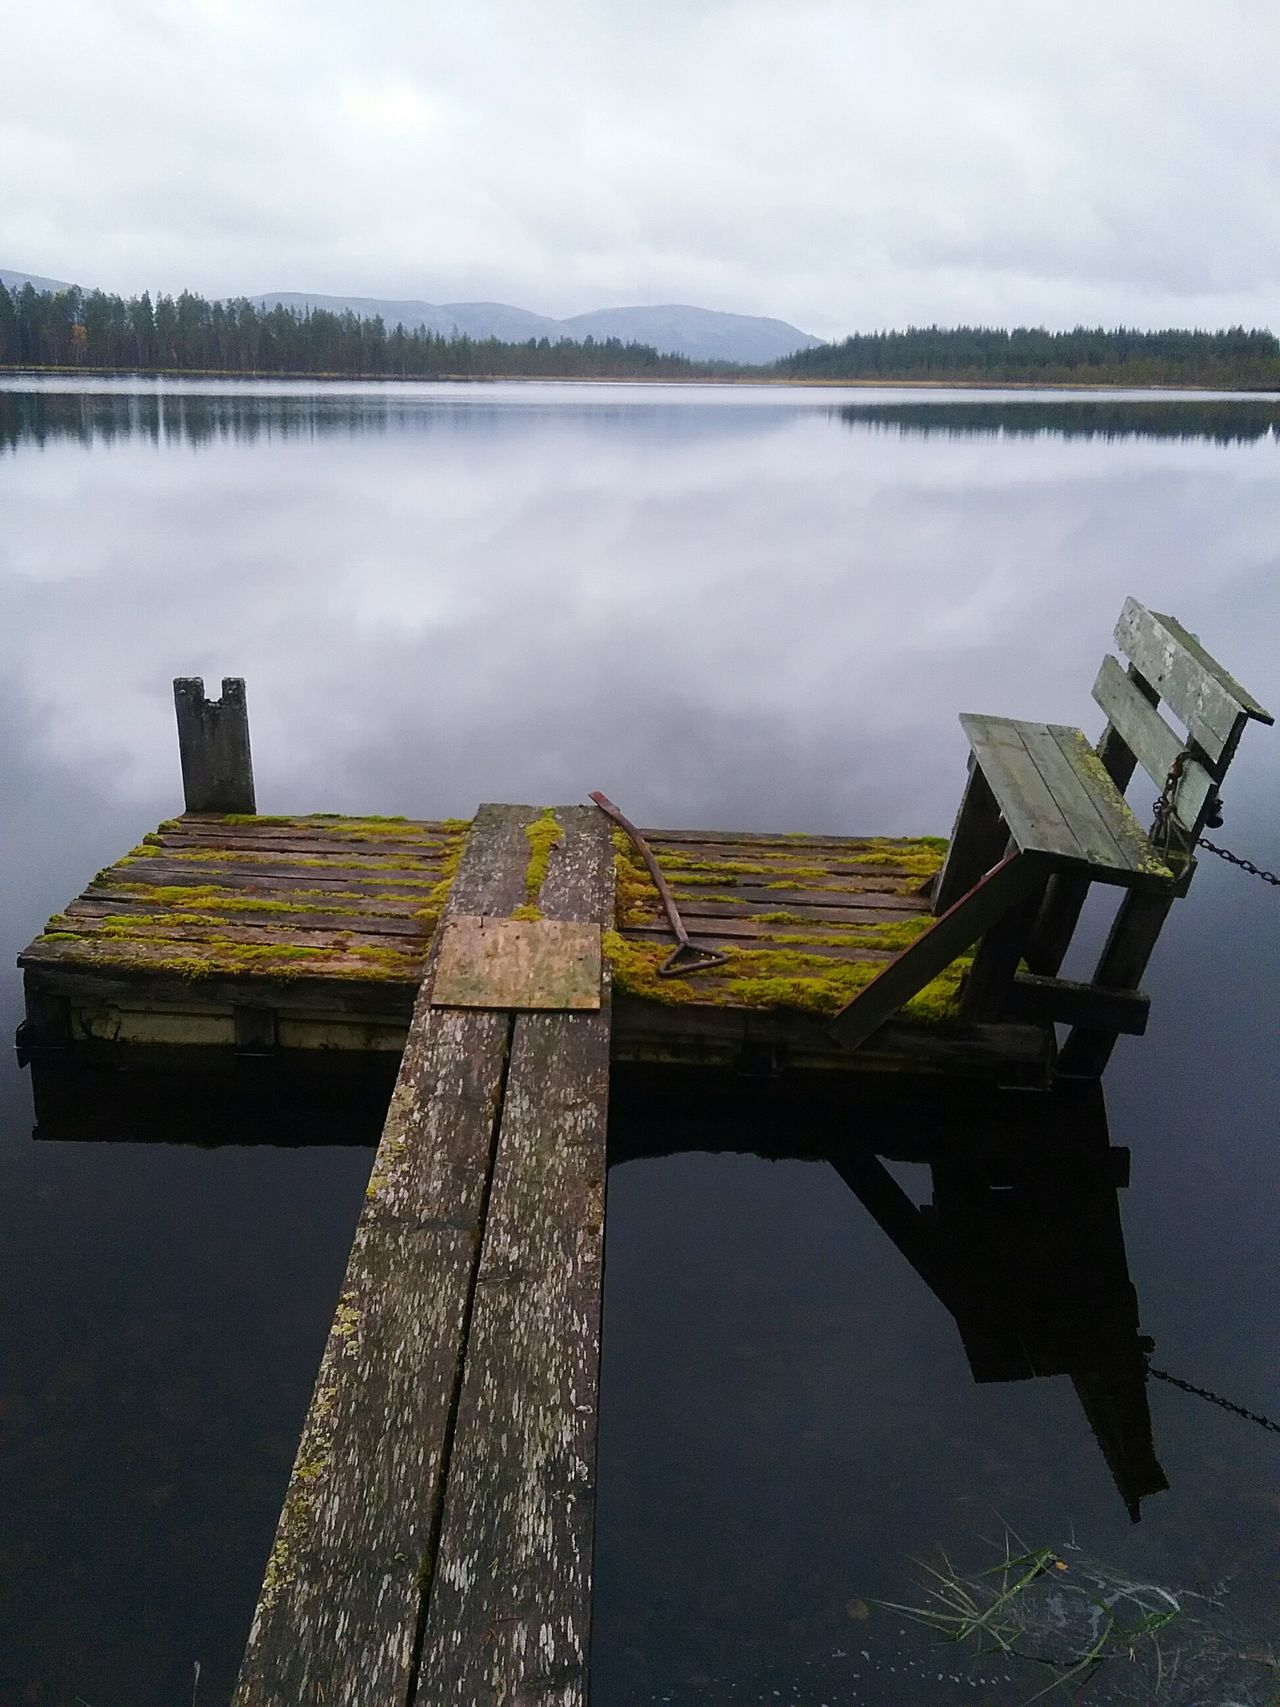 Serenity Lappland Pond Pier Wooden Bench Scenery Nature Photography No People Picturesque Ramshackle Abandoned Gone Beauty Calm Water Tranquil Scene This Is Finland Moss Woods Fell Pyhätunturi My Year My View